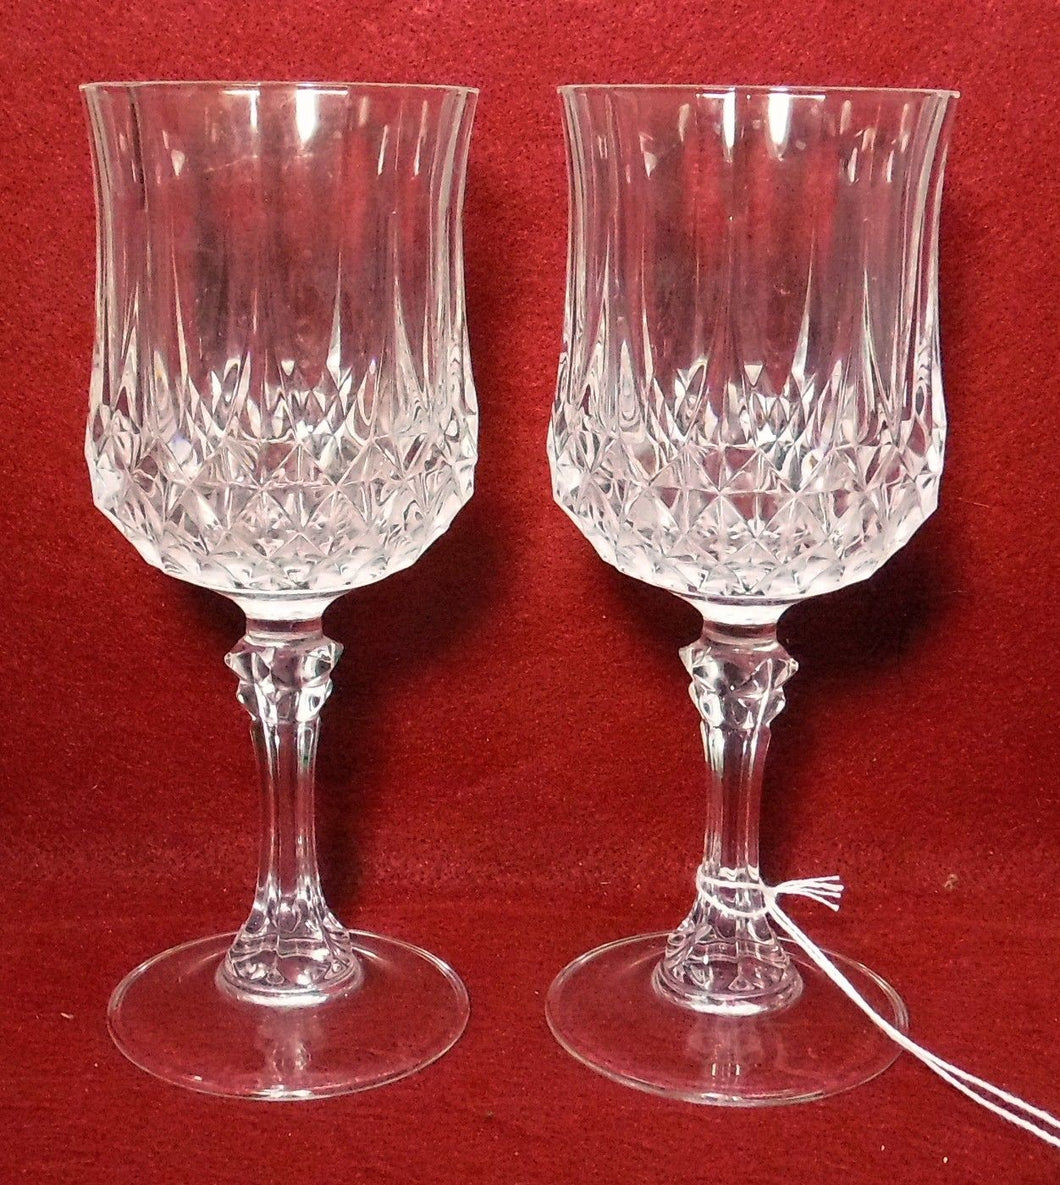 CRISTAL D'ARQUES Durand crystal LONGCHAMP Set of 2 Water Goblets Glasses 7-1/4